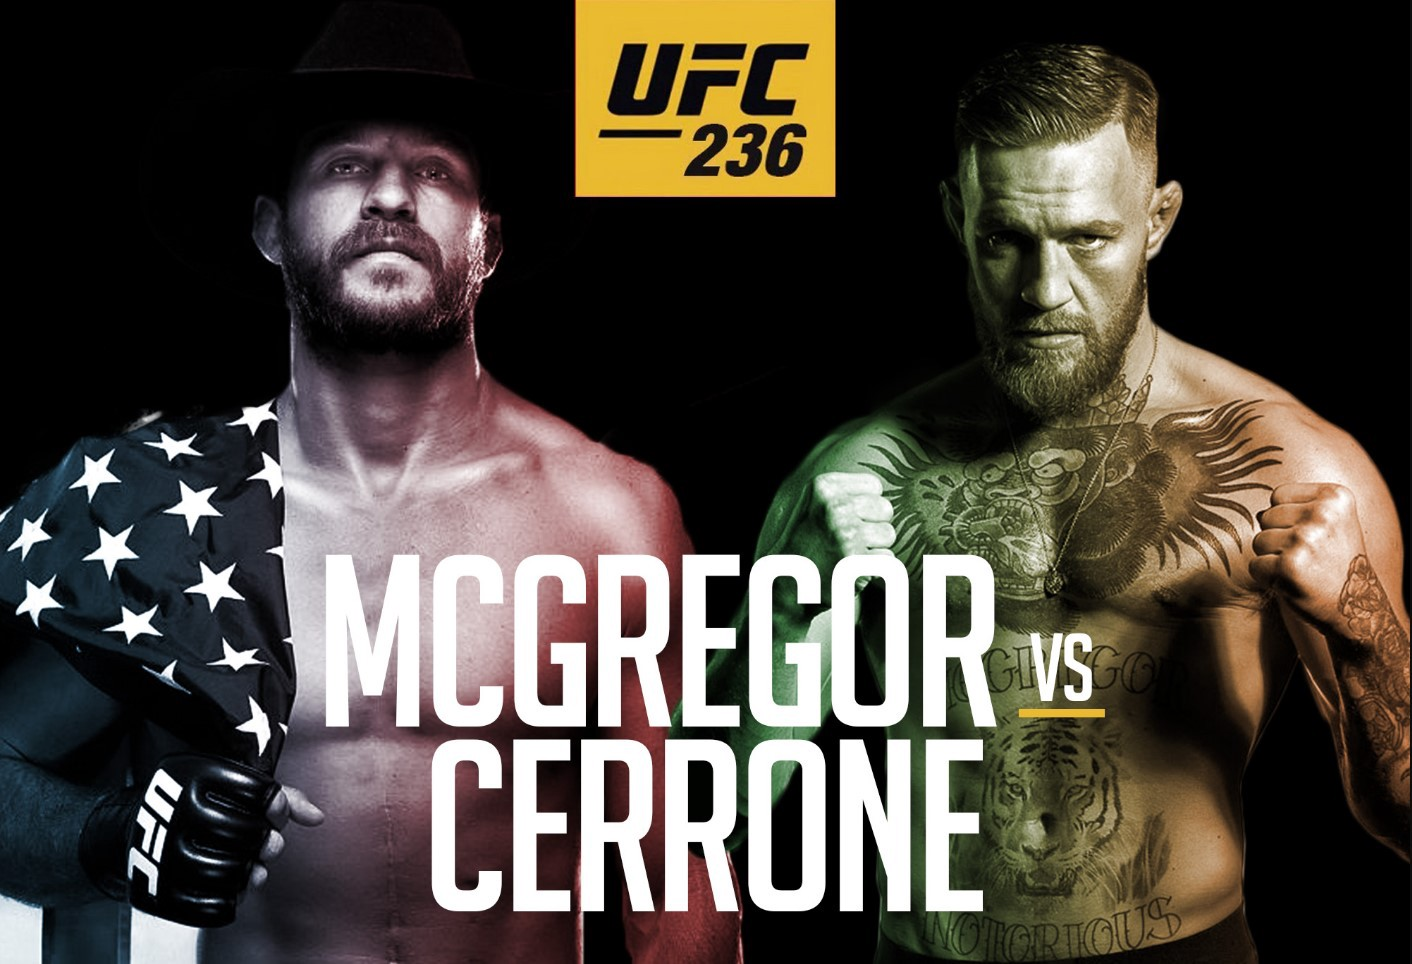 watch the conor mcgregor fight live free